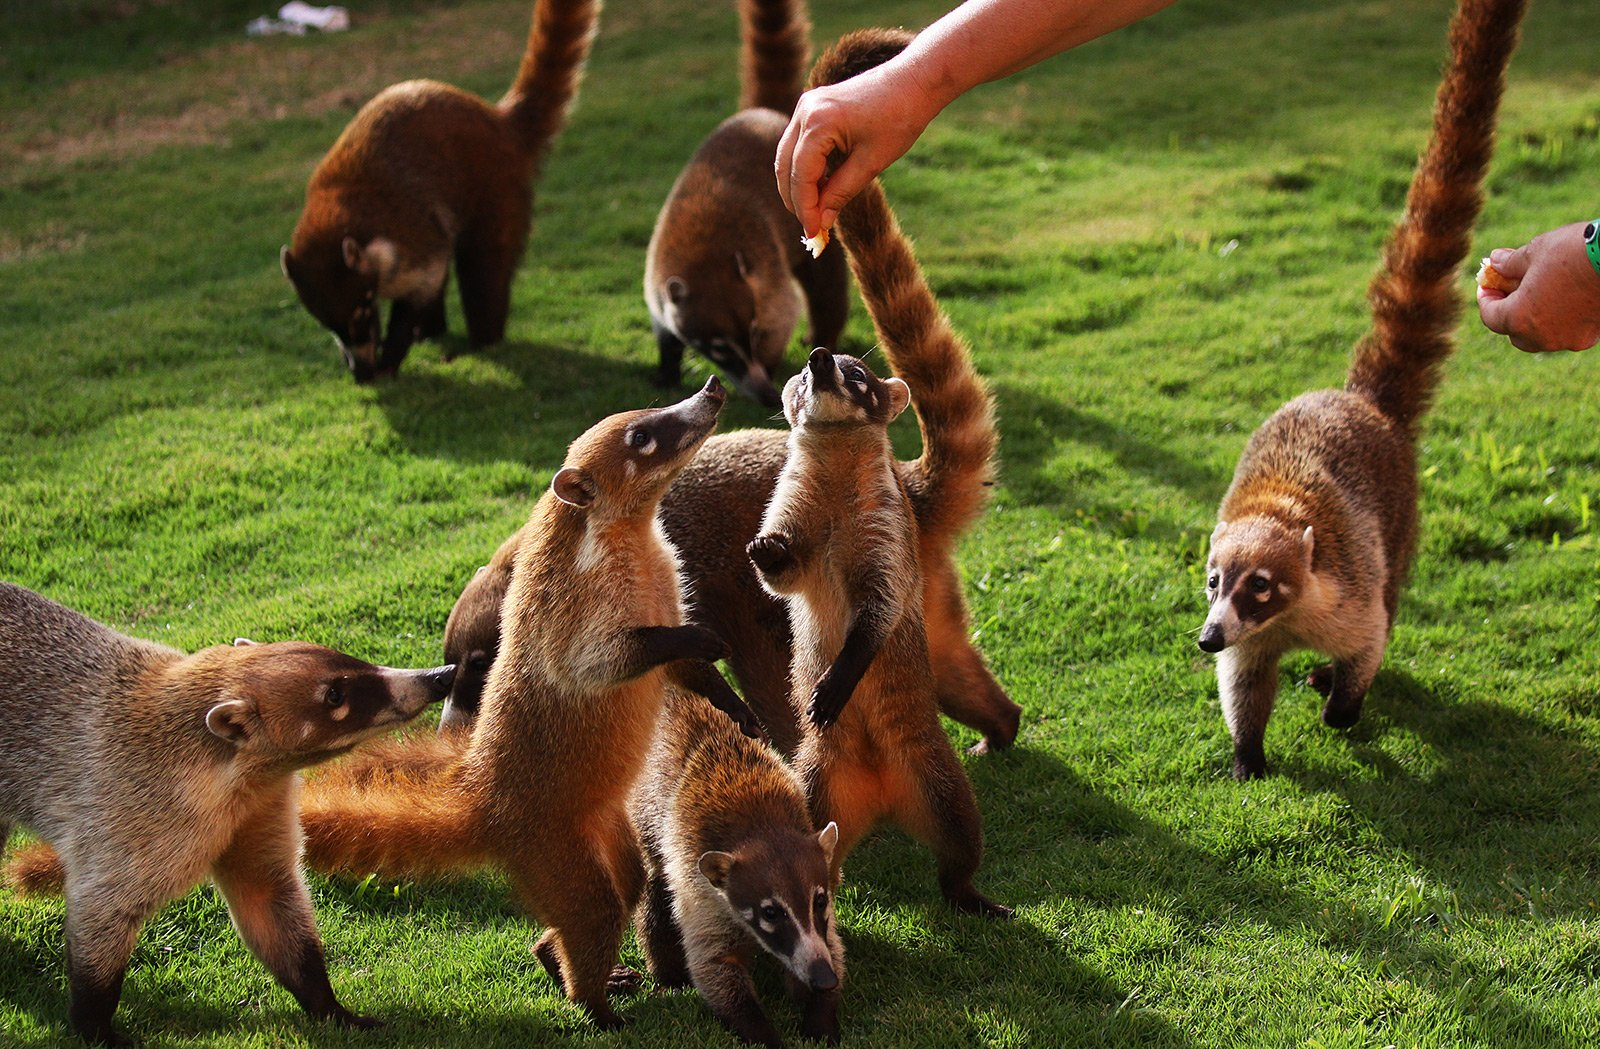 How to feed coatis in Cancun